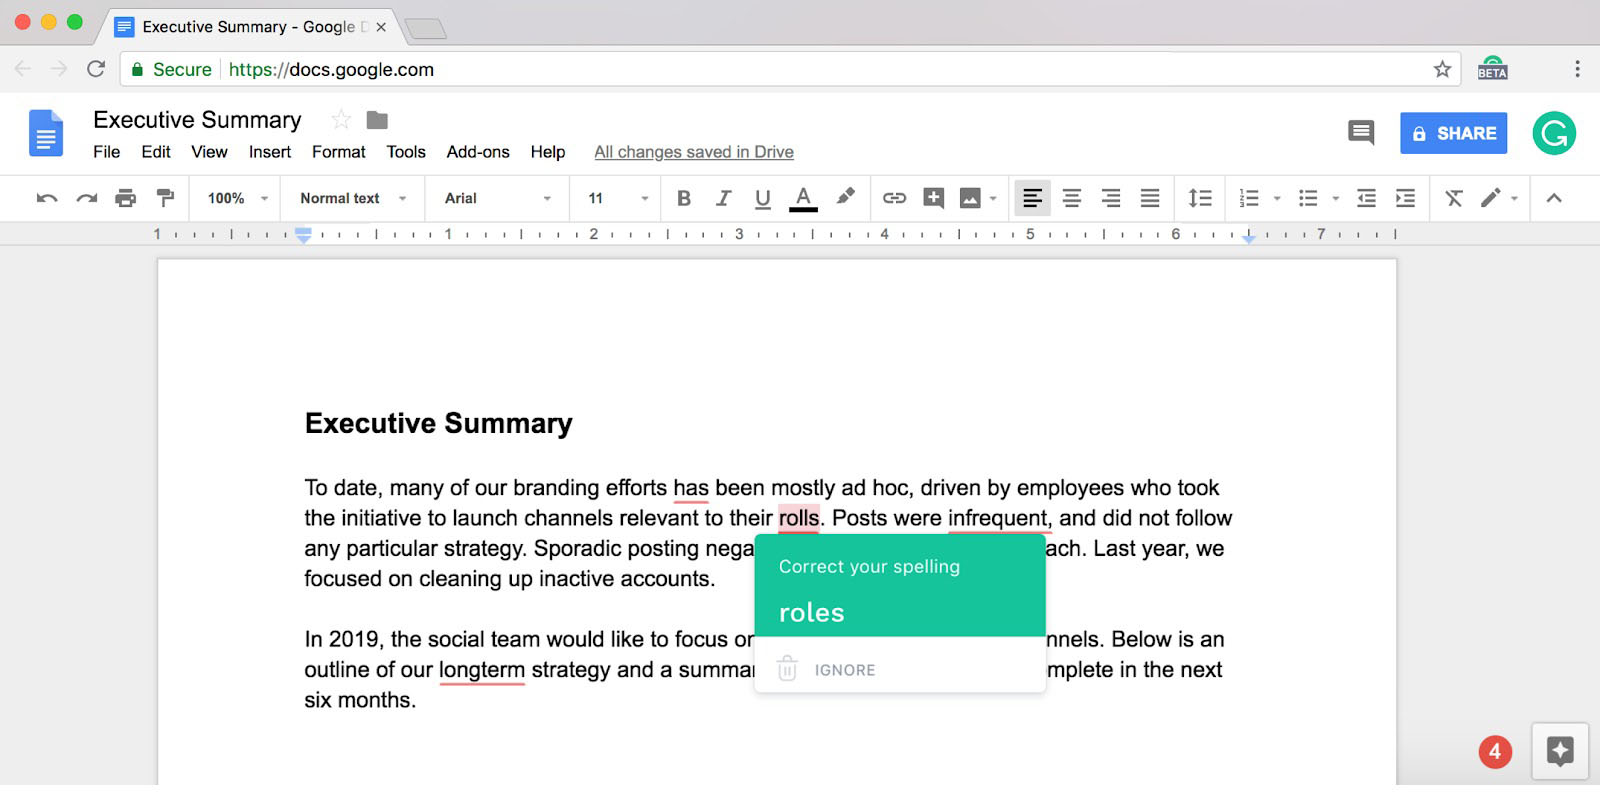 grammarly adds google docs support in beta for all users this week